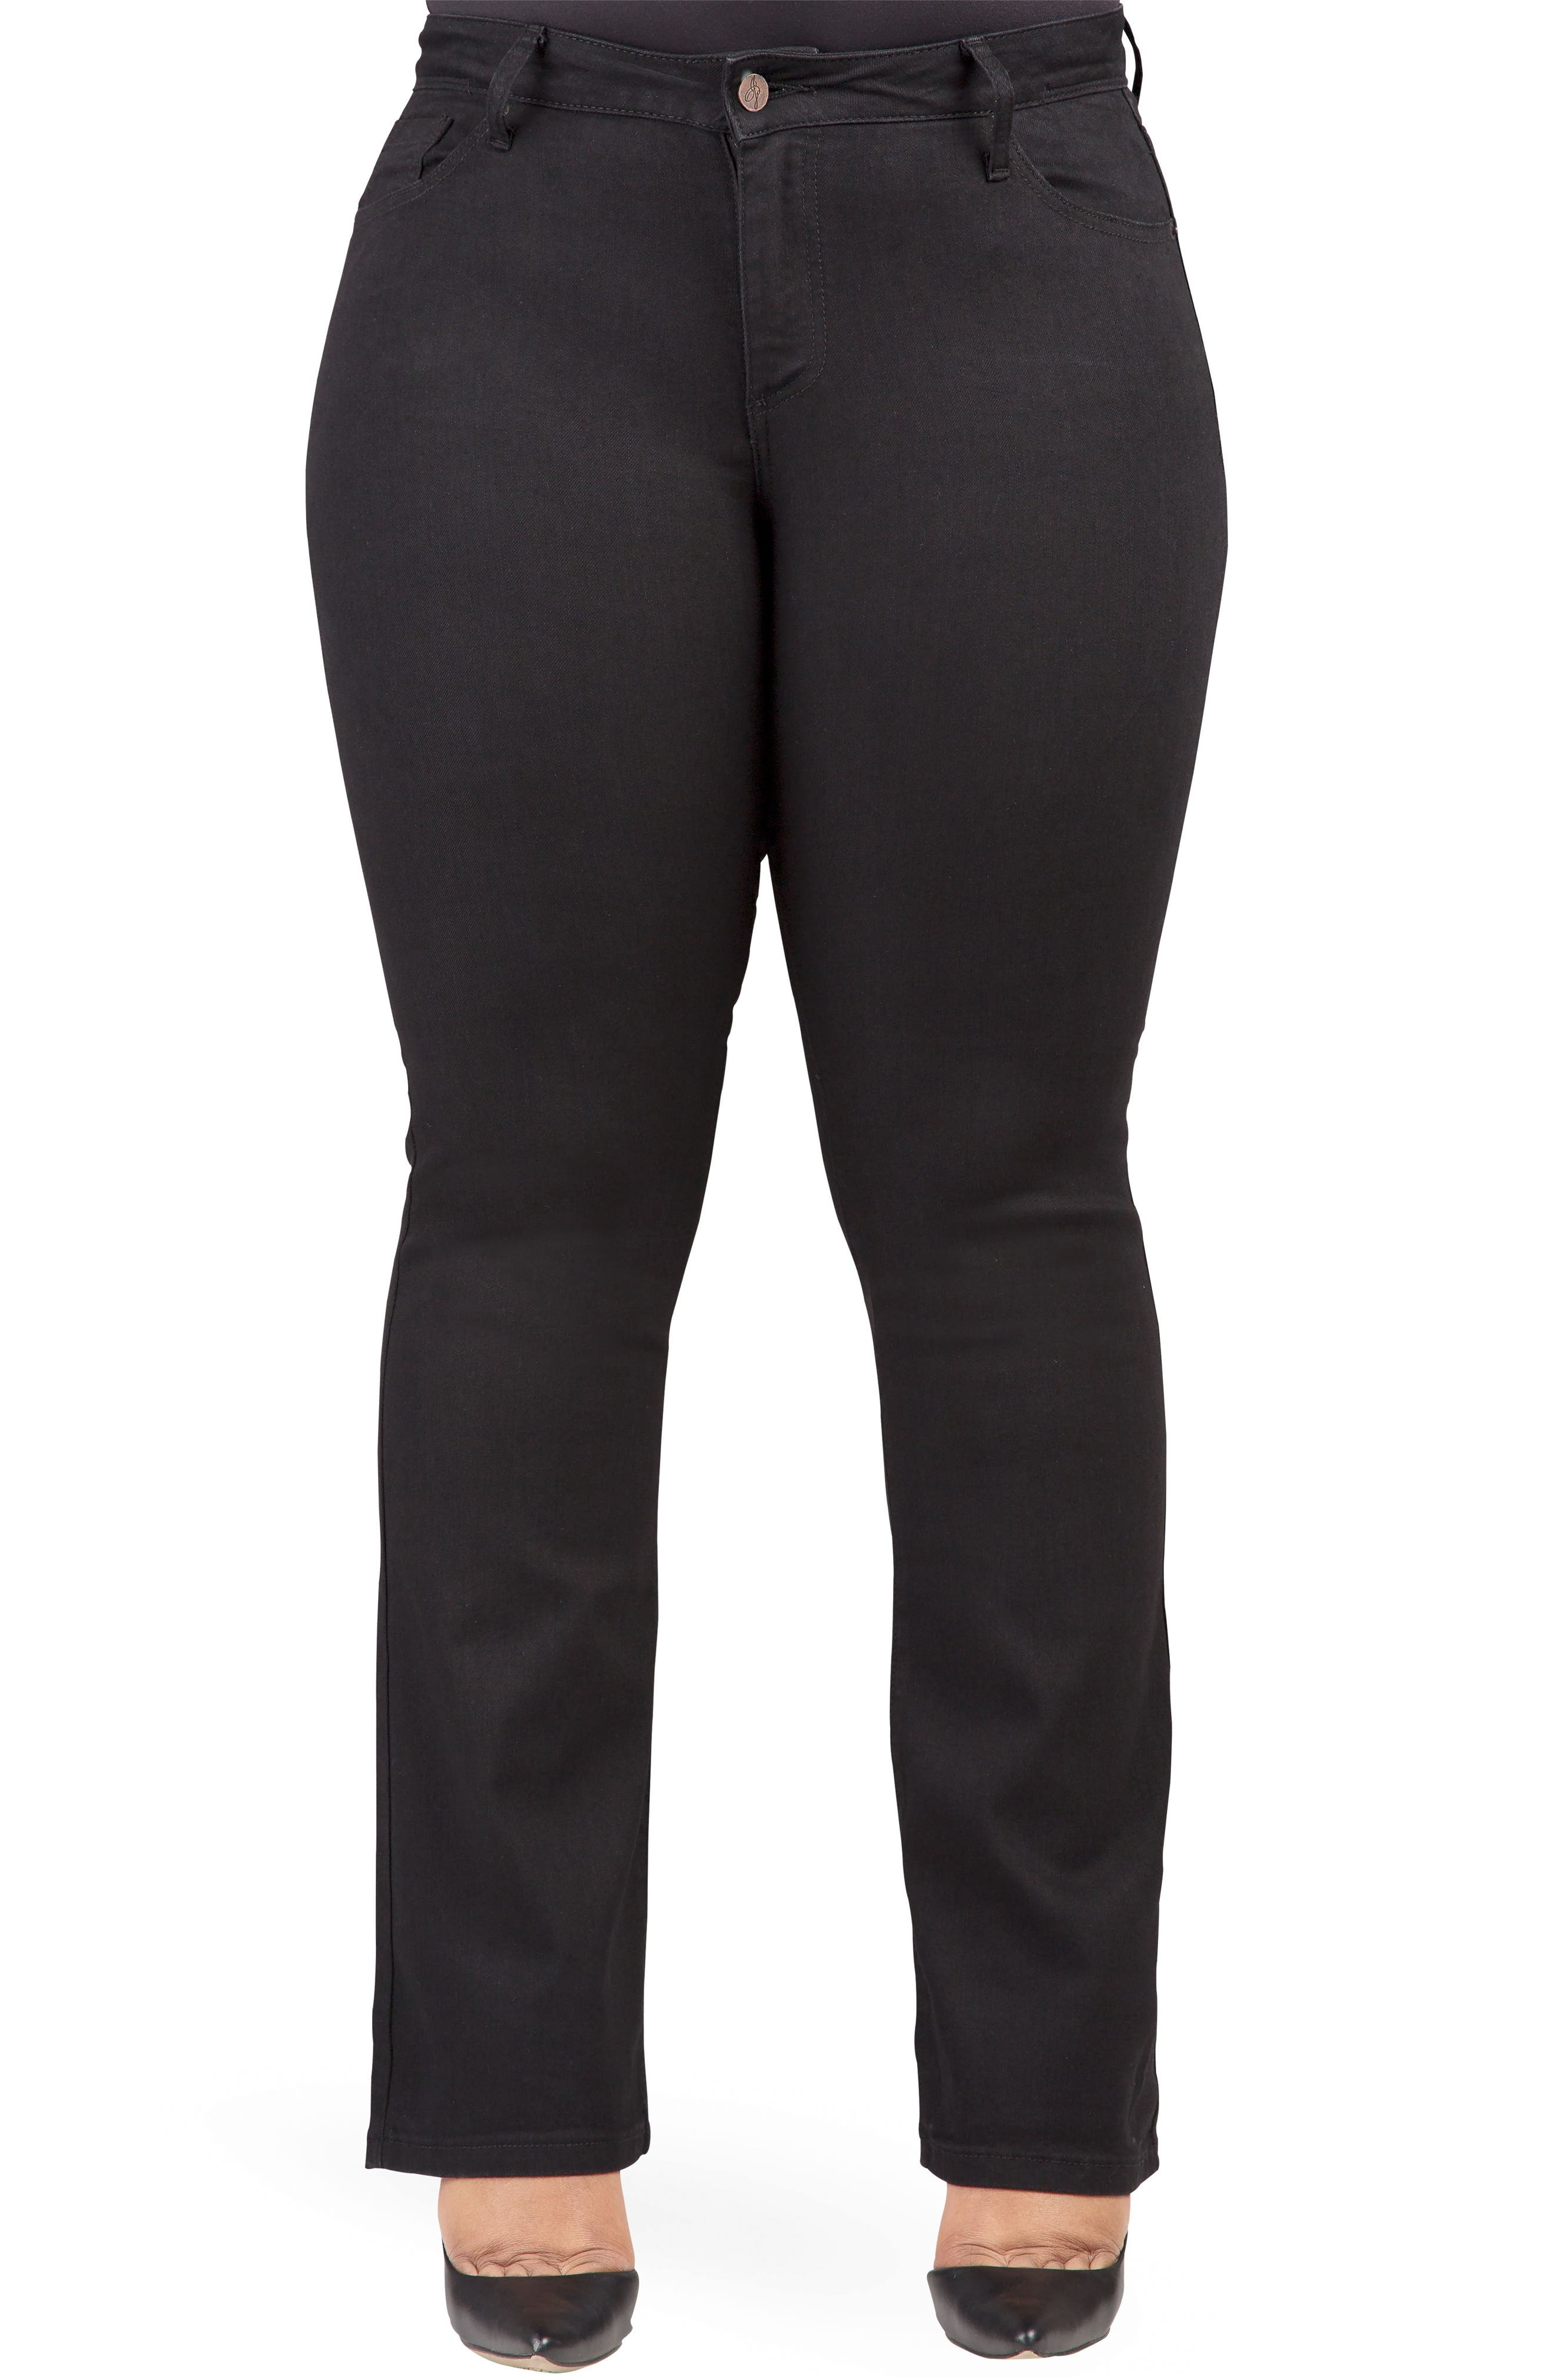 Main Image - Poetic Justice Scarlett Slim Bootcut Curvy Fit Jeans (Plus Size)